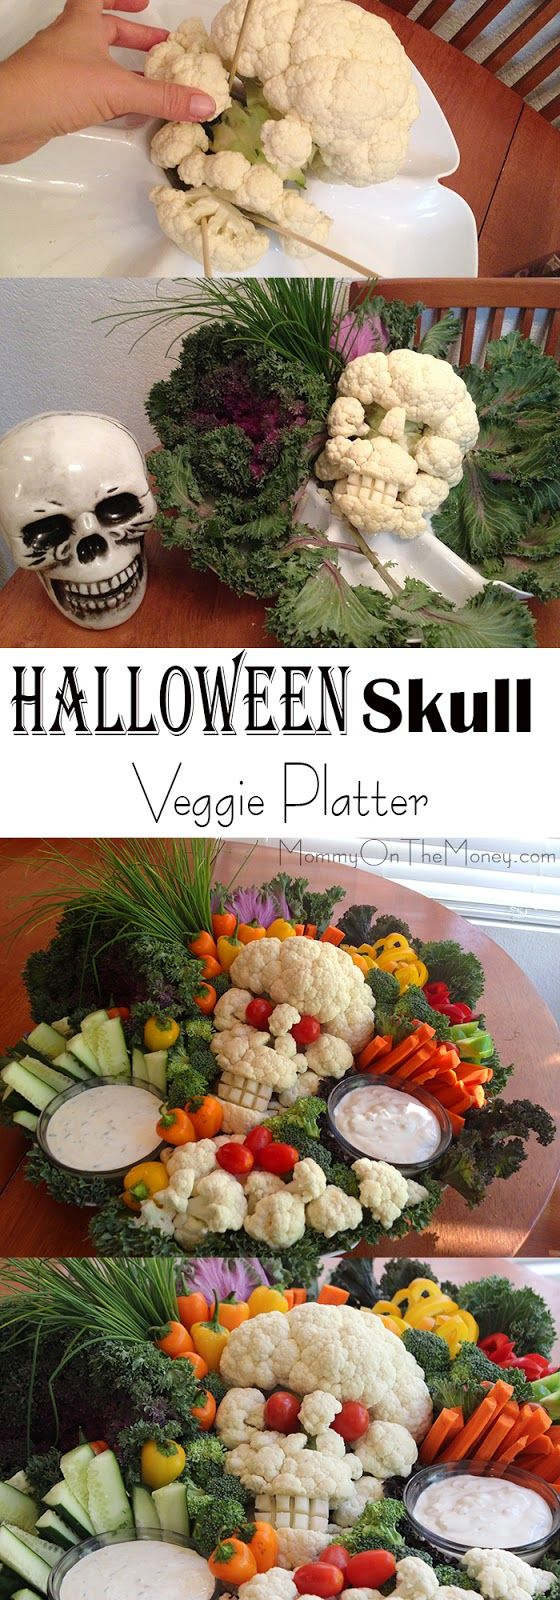 69 best Vegan Halloween images on Pinterest